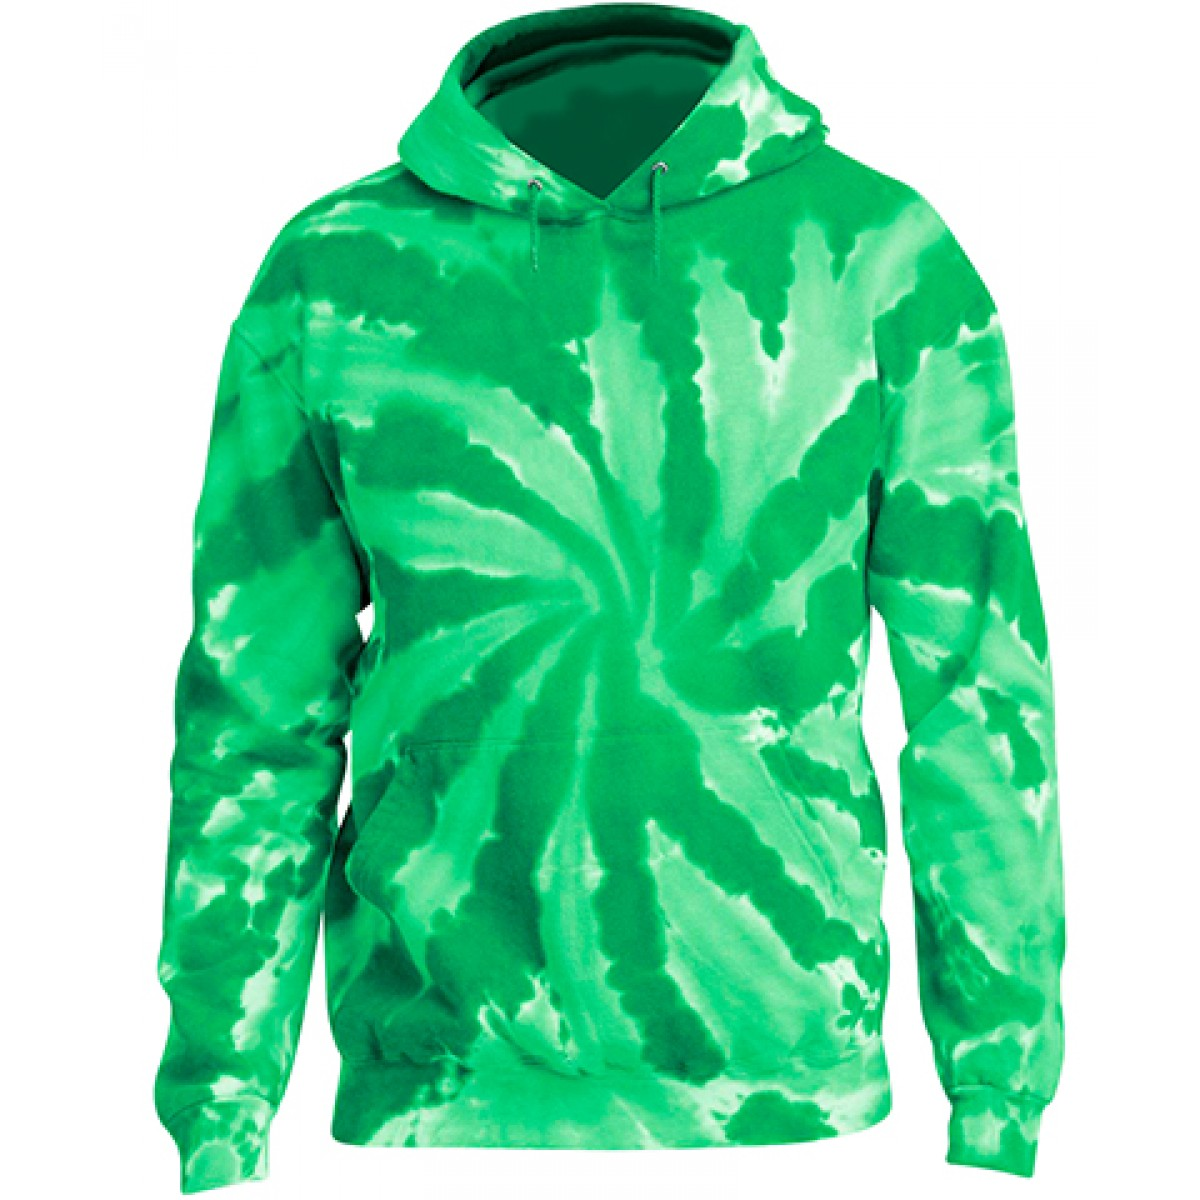 Tie-Dye Pullover Hooded Sweatshirt-Green-YM